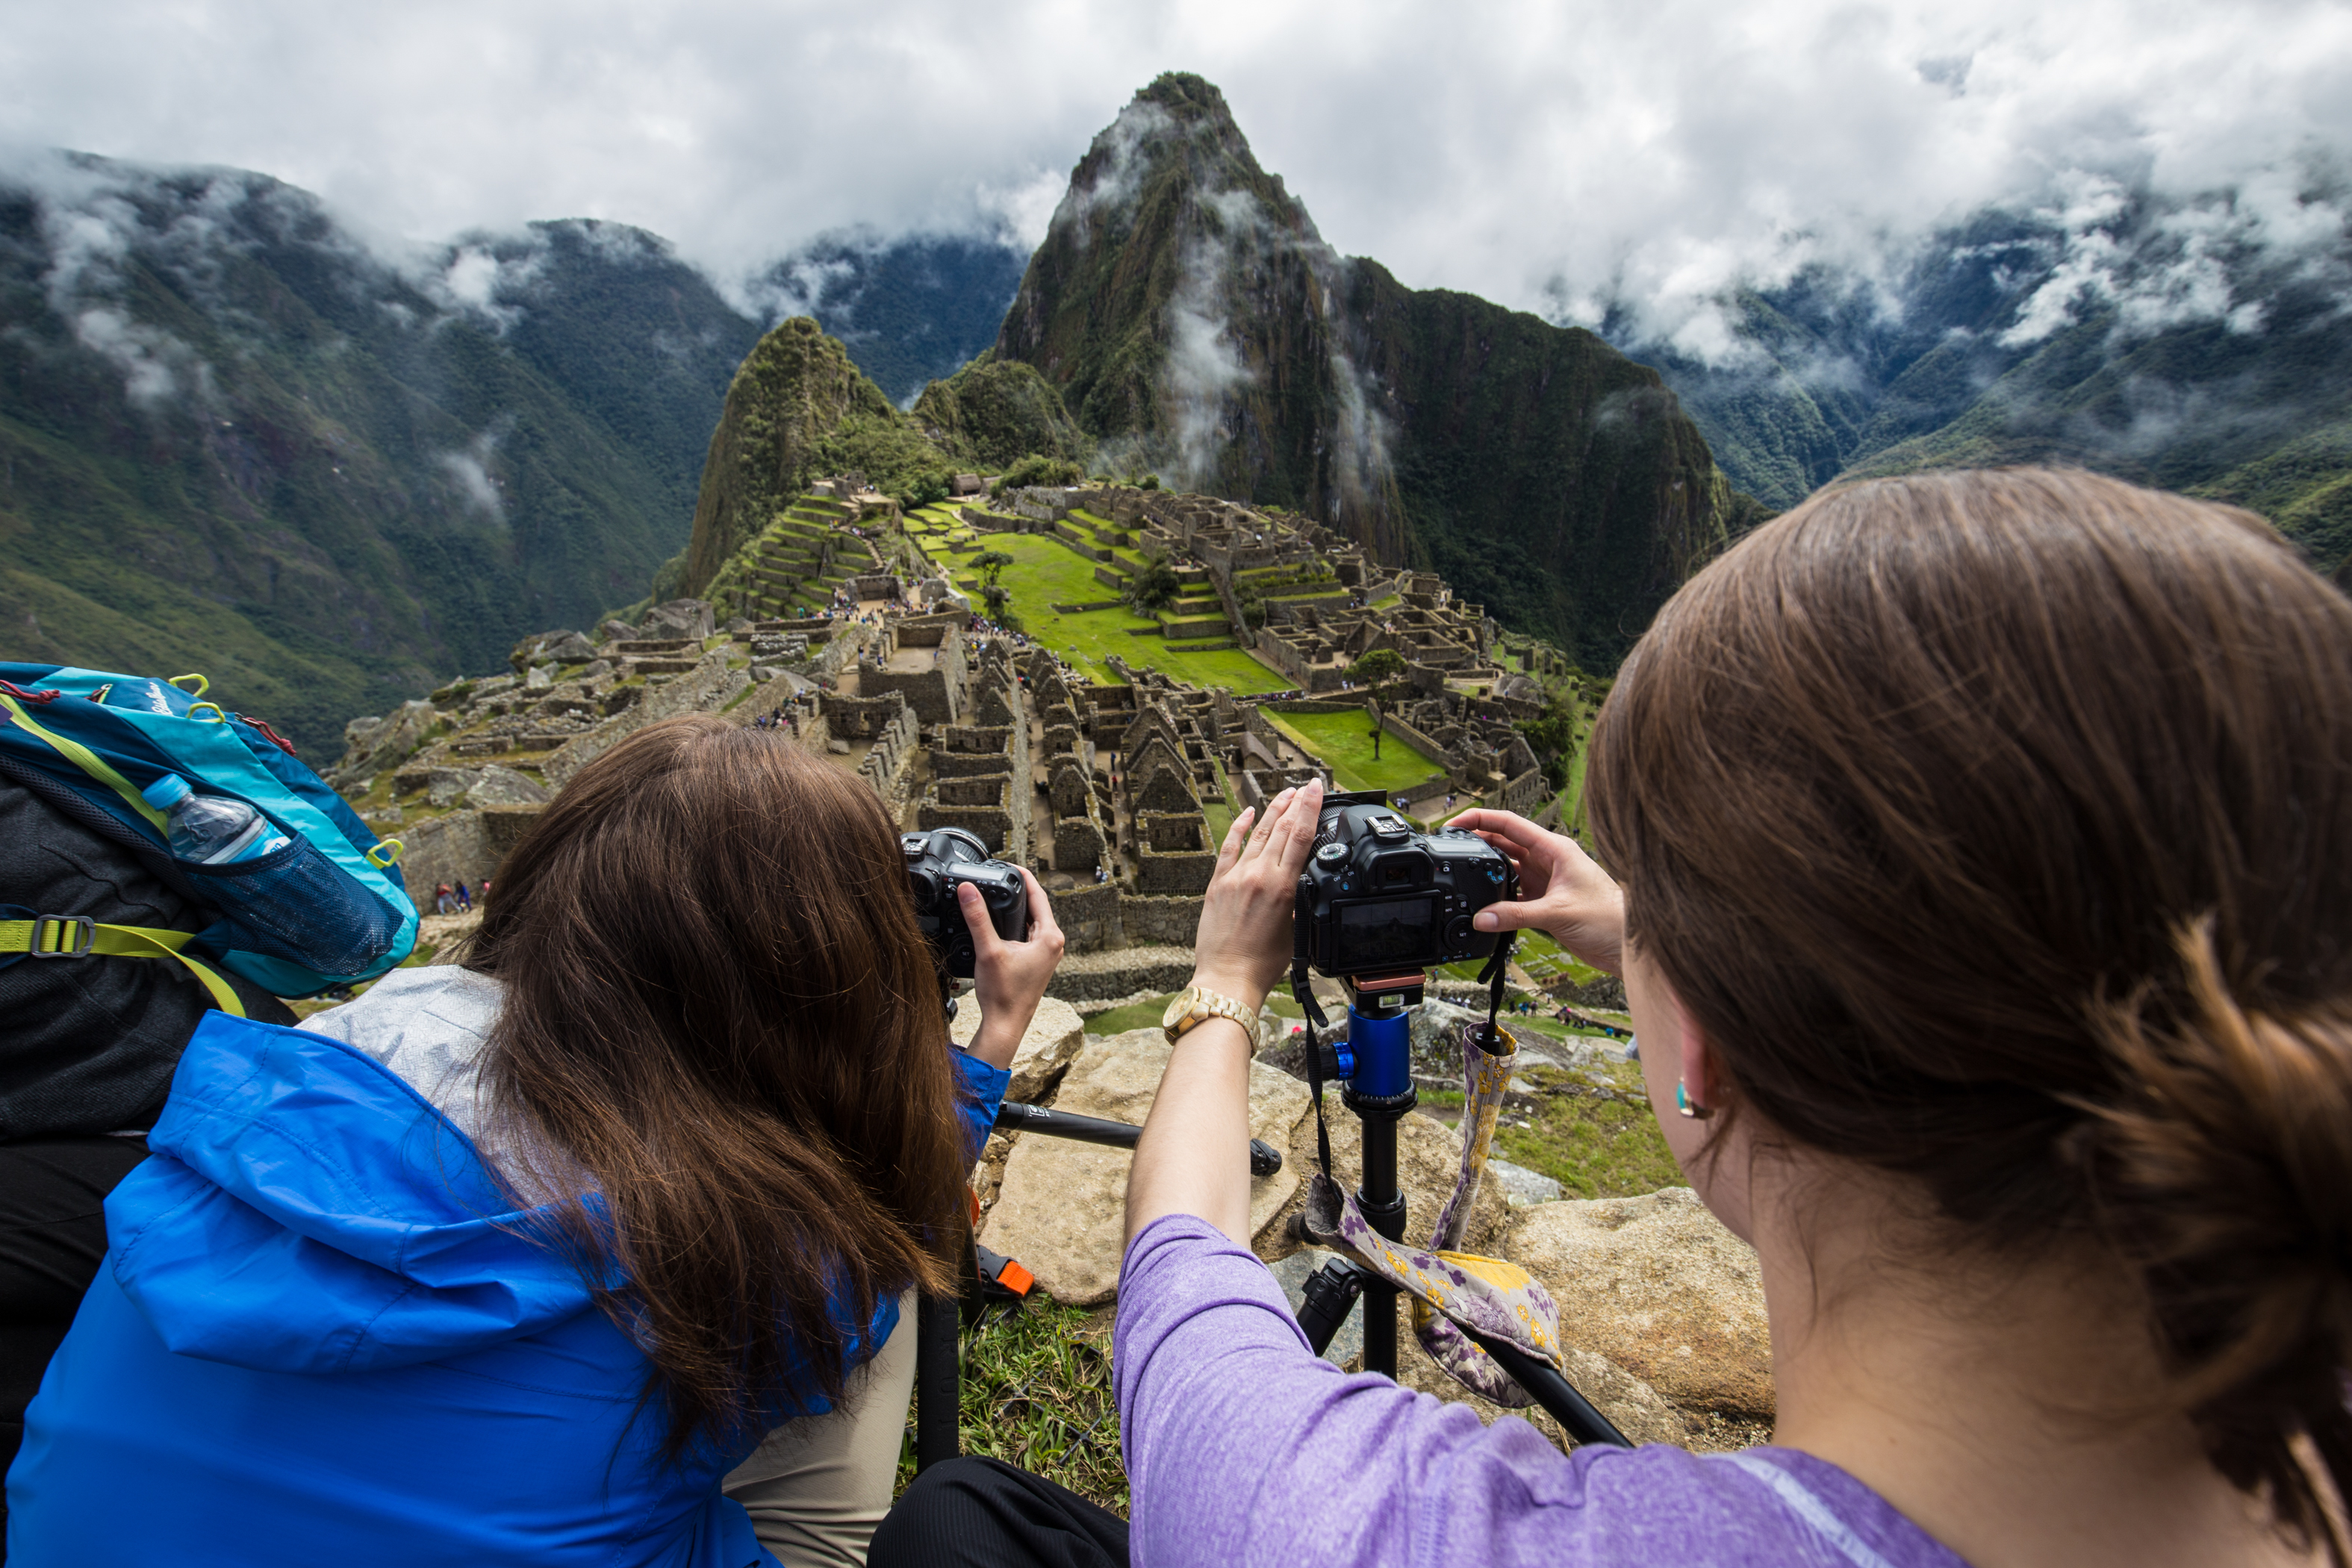 Join us for Explore Peru photography workshop and tour in June!